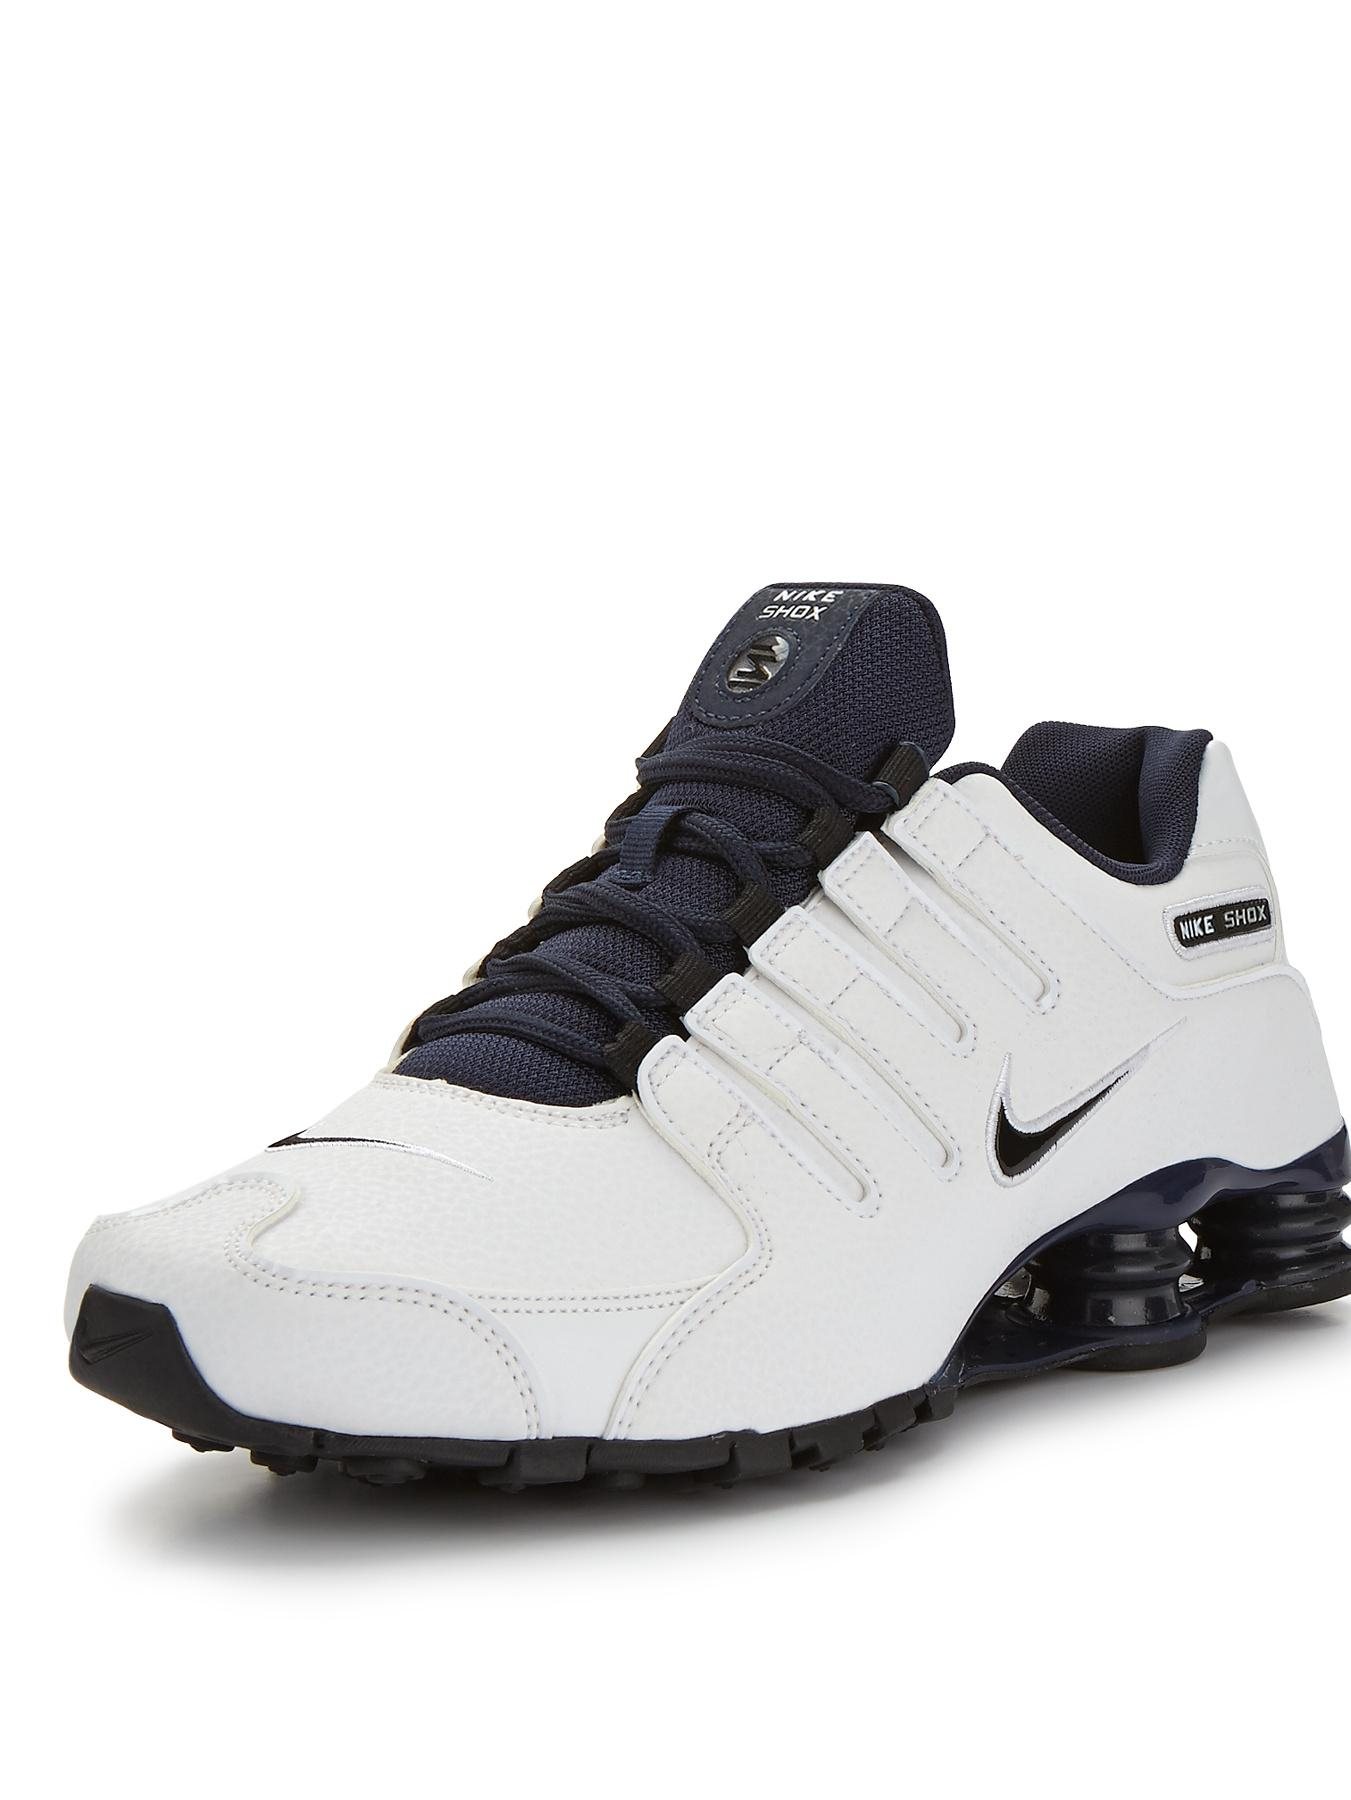 Nike Shox Leather Black